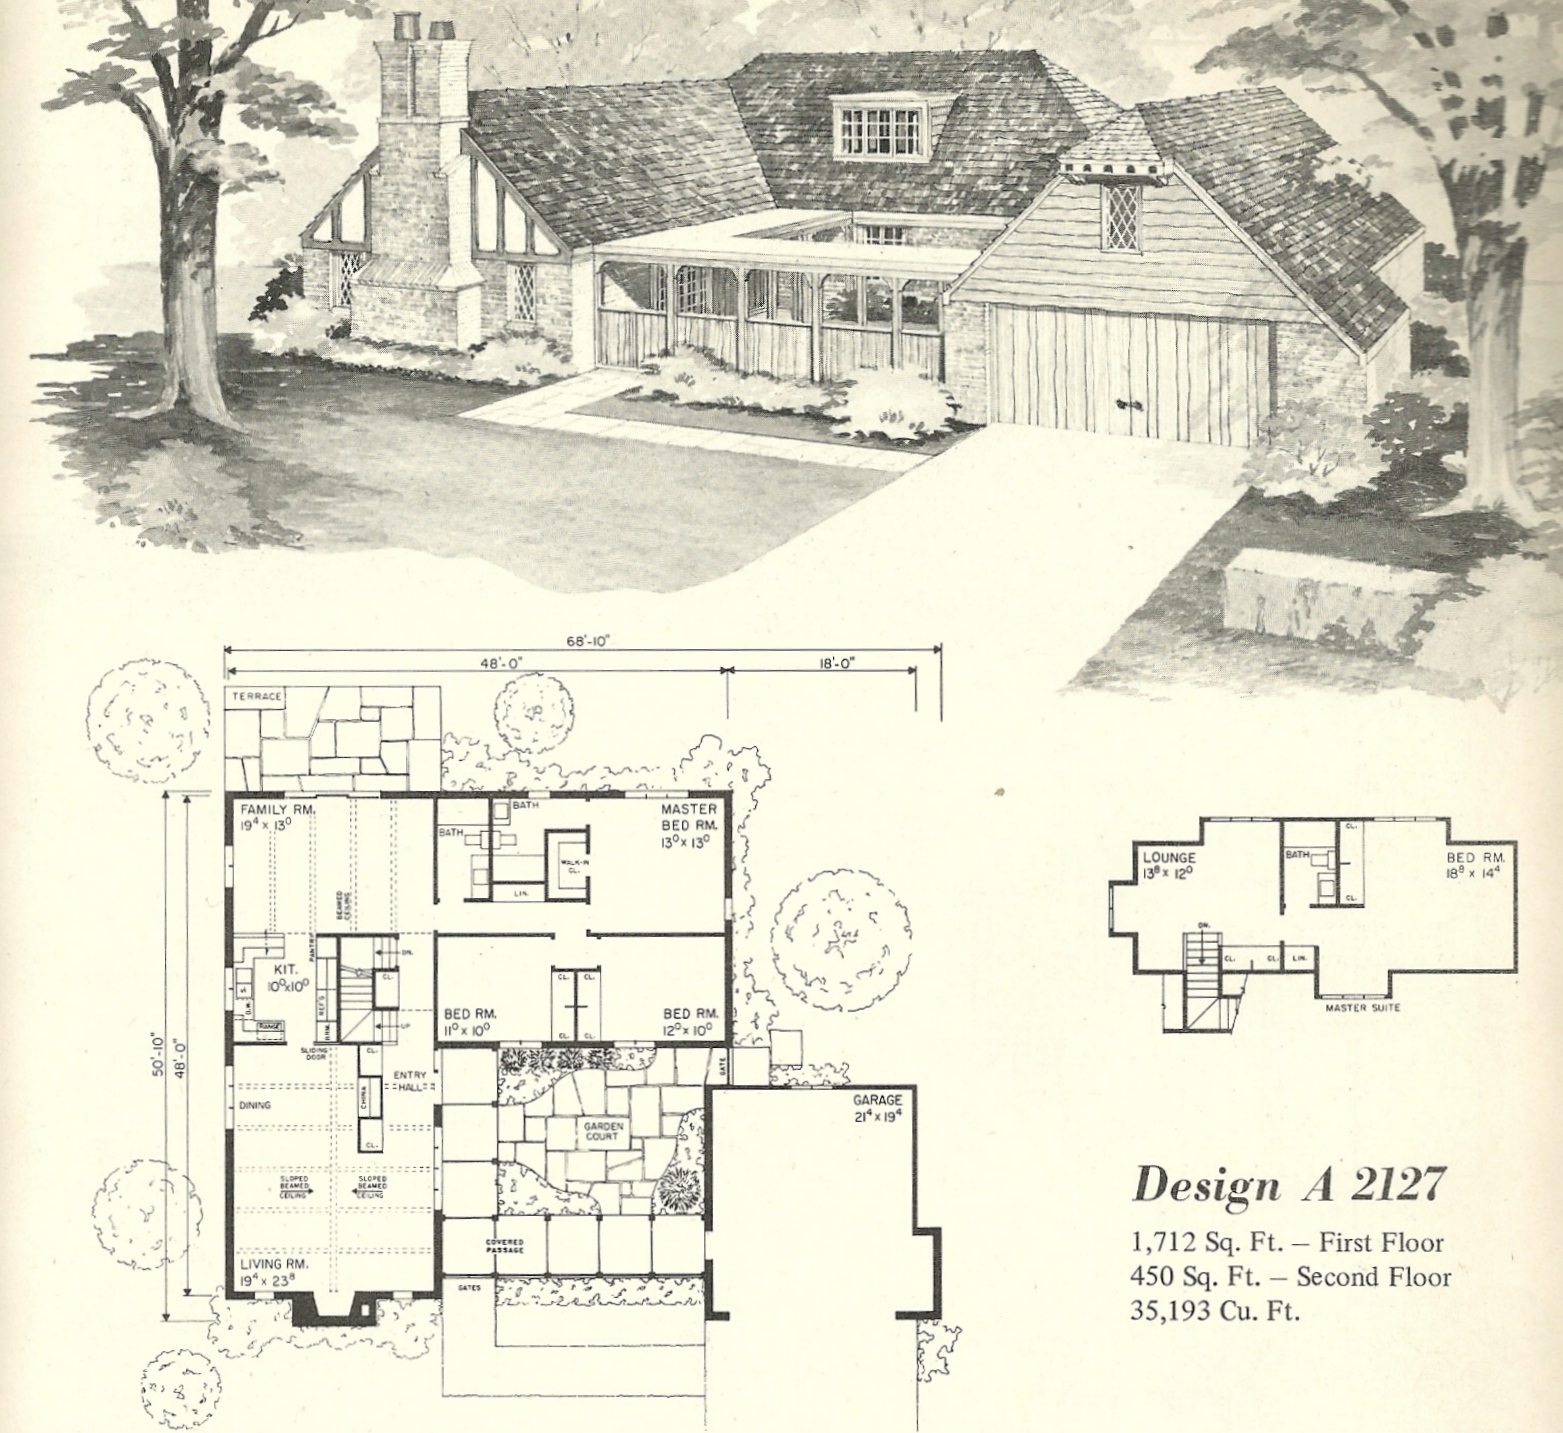 Vintage house plans 2127 antique alter ego - Retro home design ...